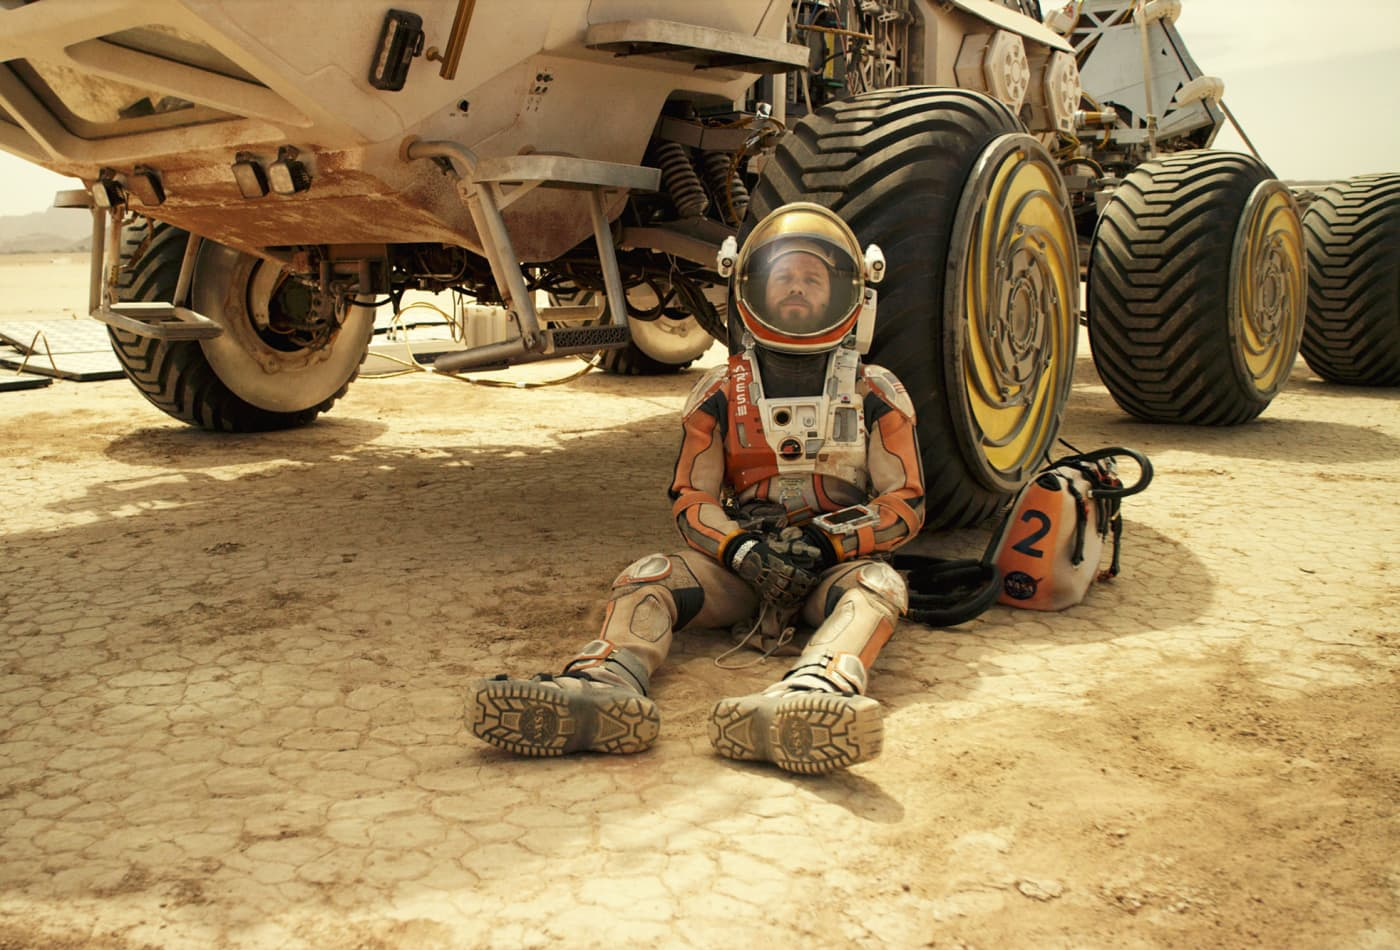 Before 'The Martian,' Andy Weir thought he'd failed as a writer